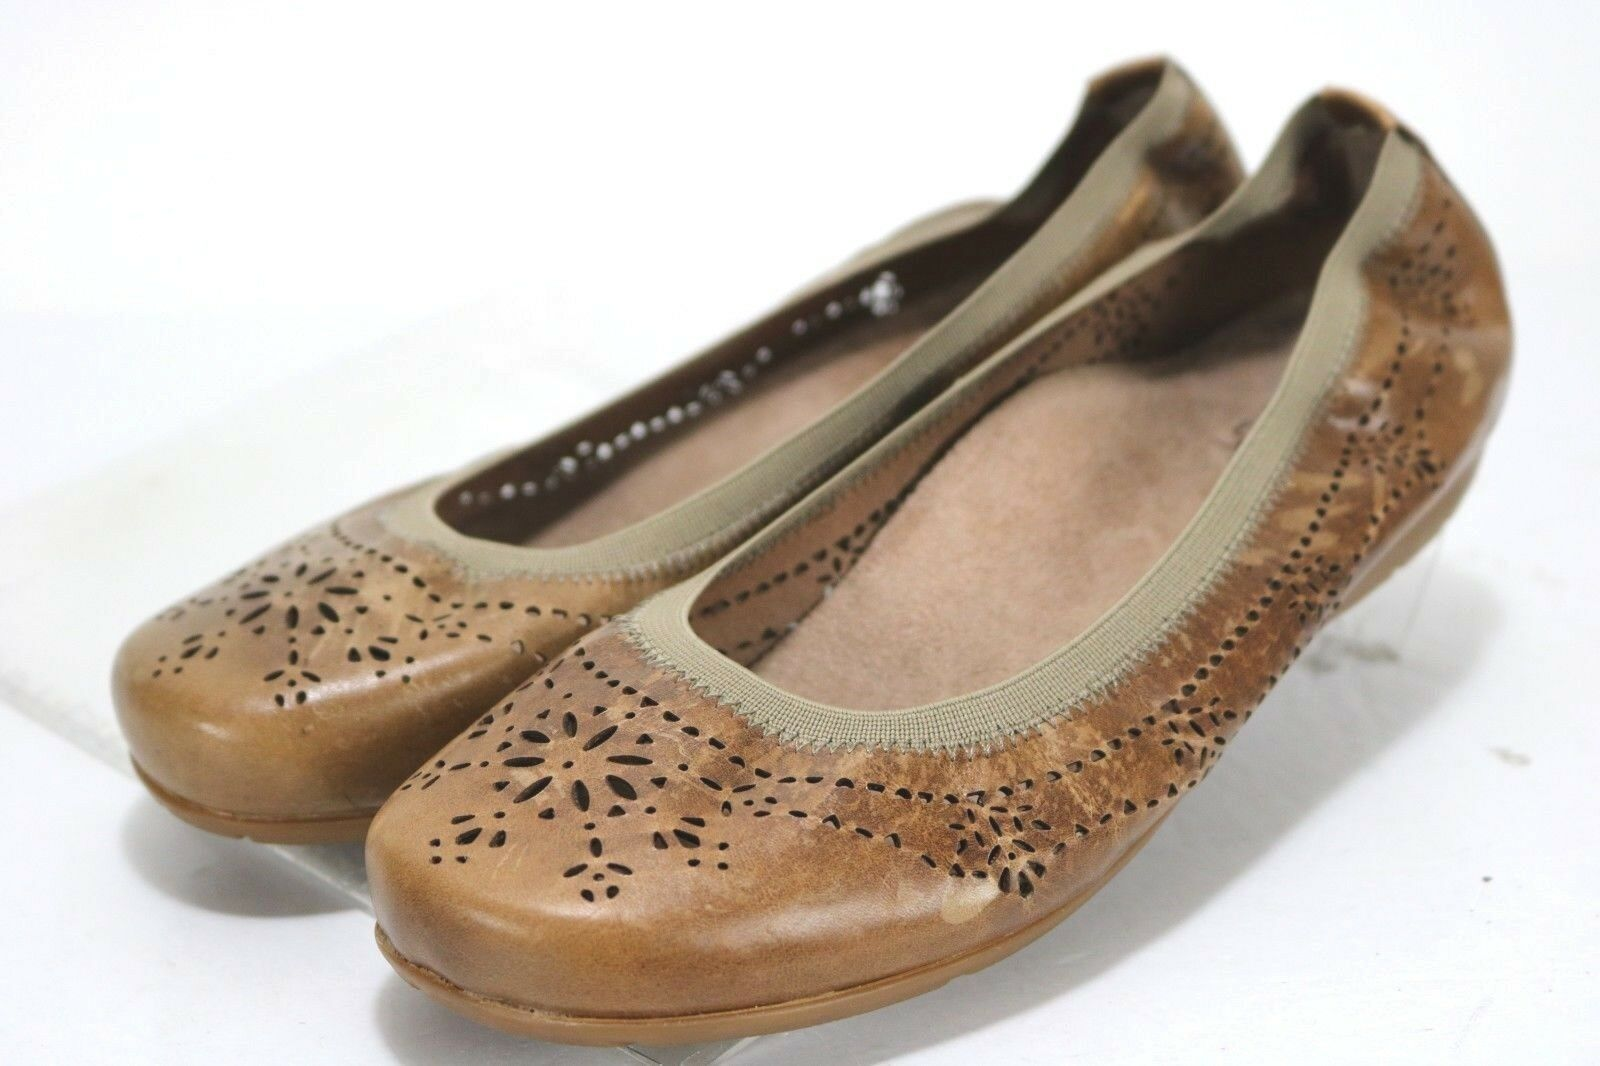 Abeo Tamara Neutral Ballet Flat Loafers  90 Womens shoes Size 9.5 N Narrow Brown